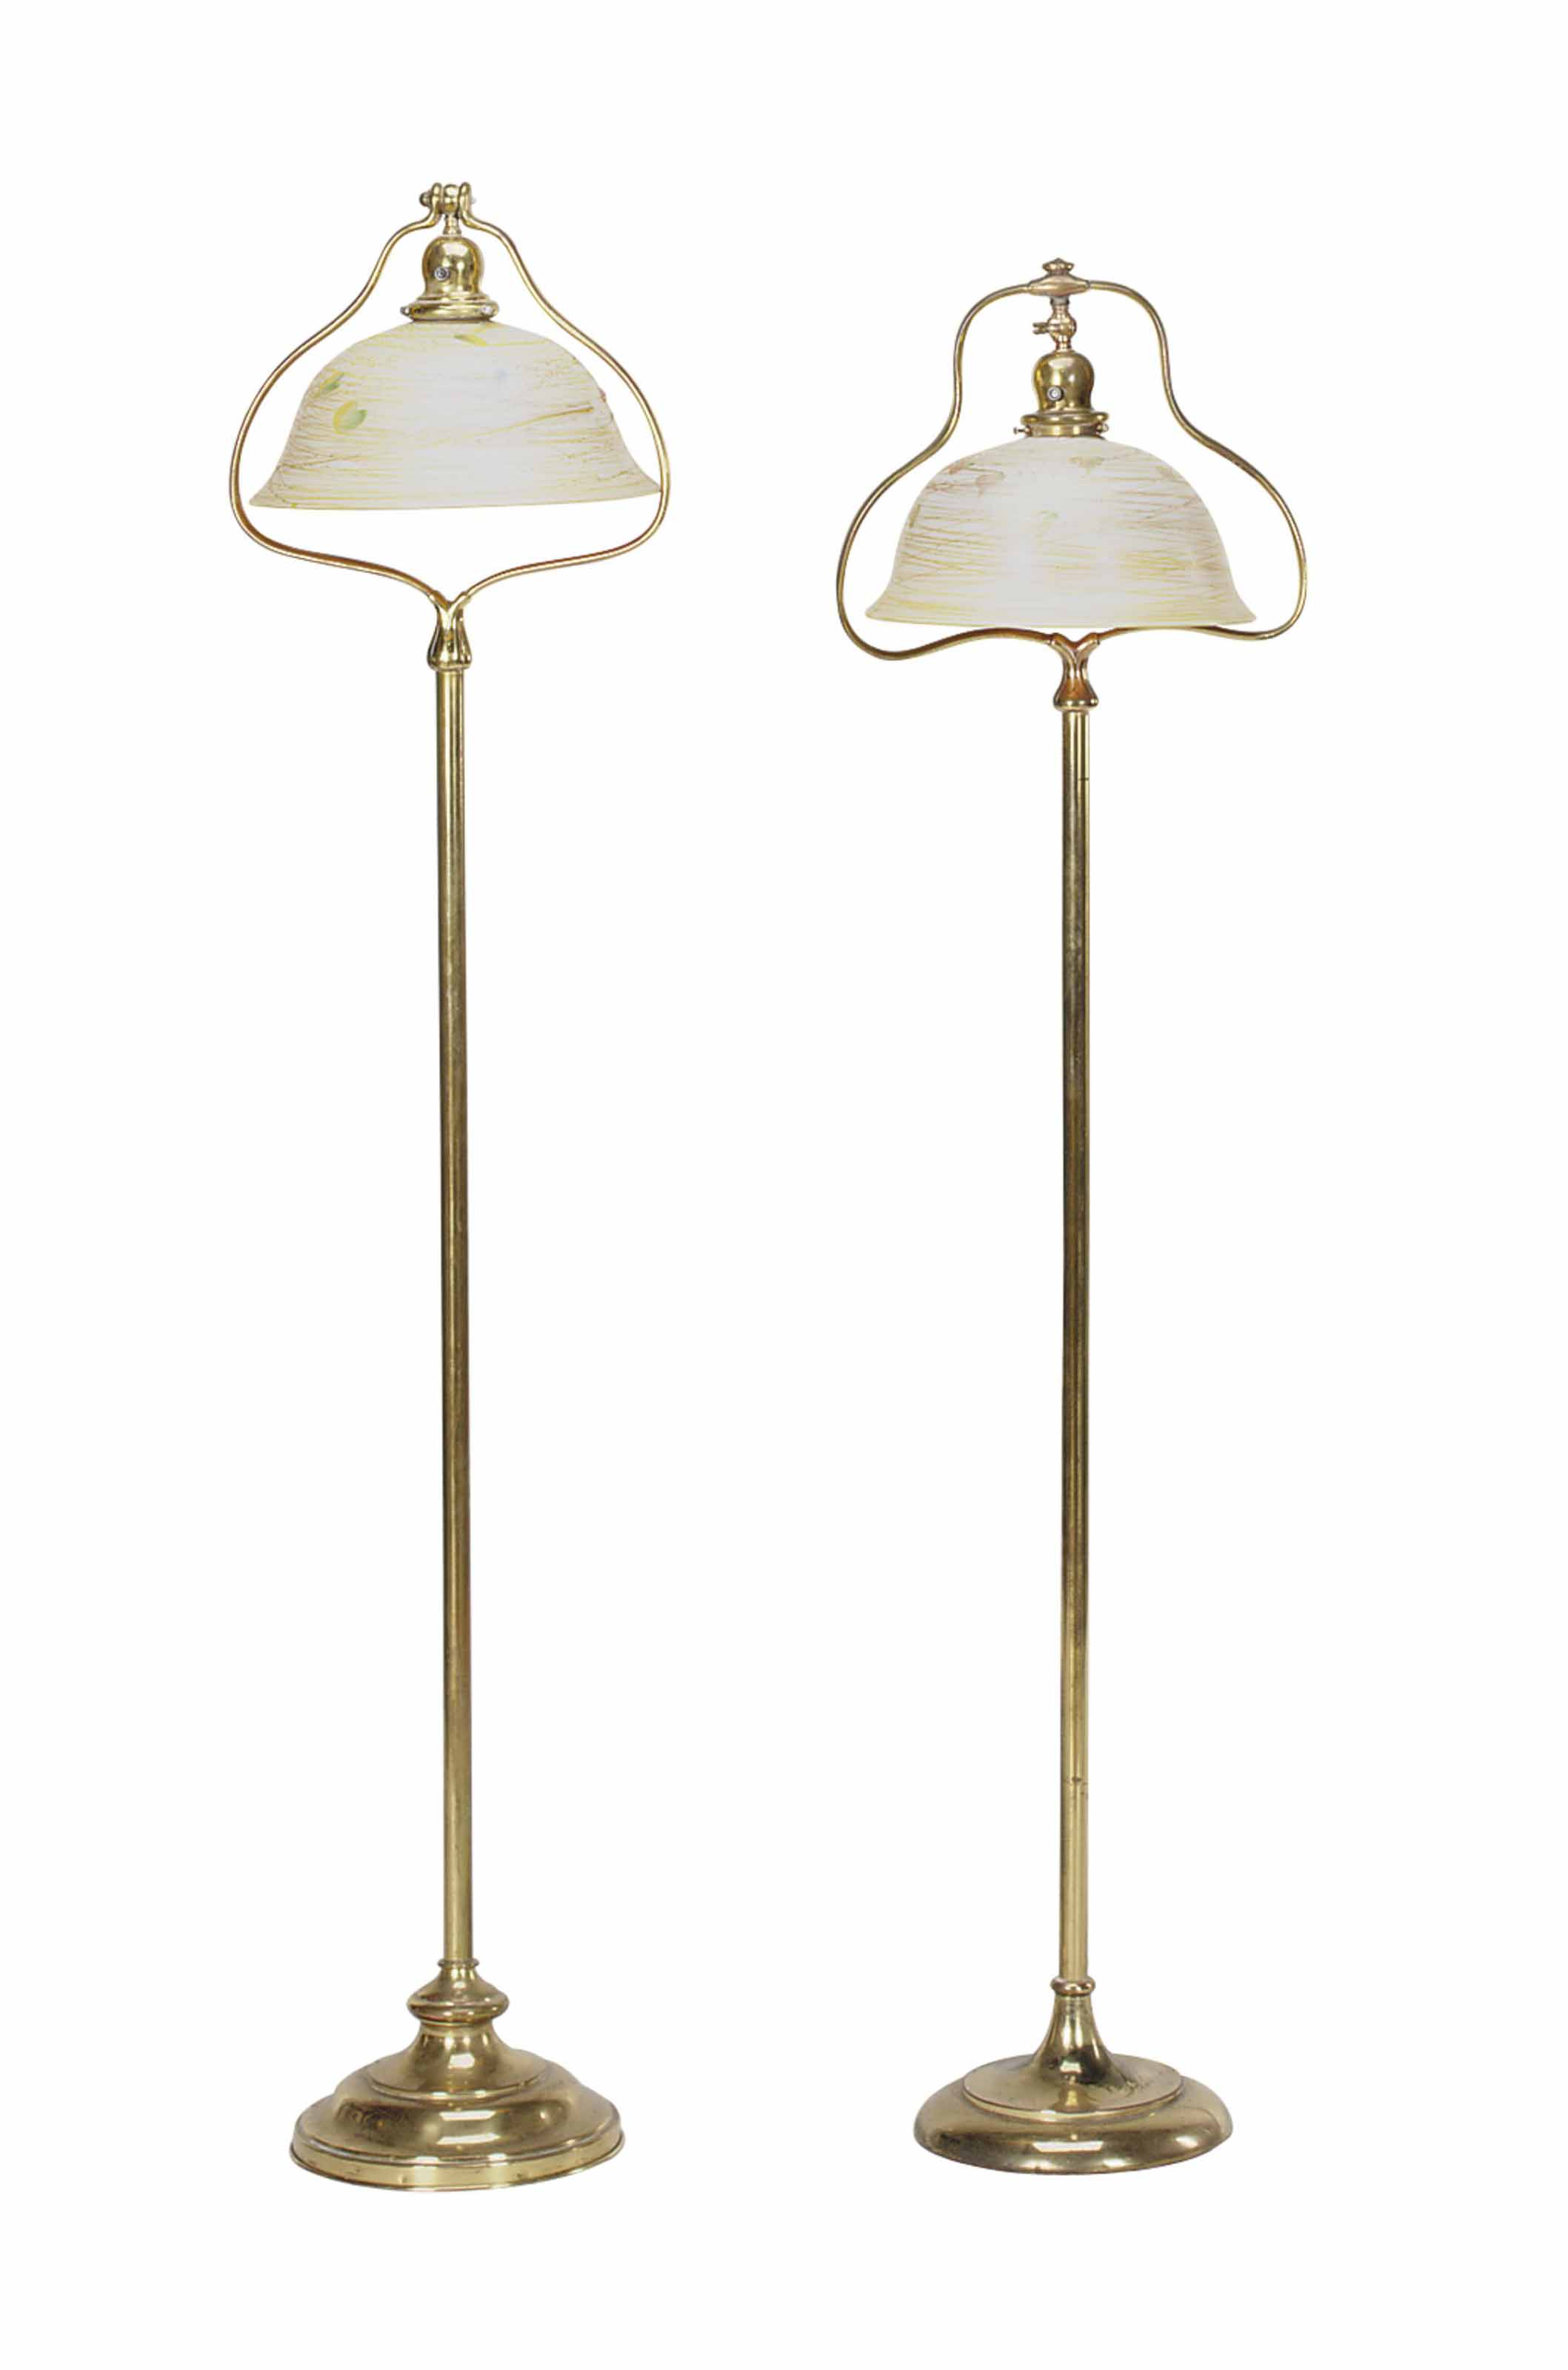 A PAIR OF GILT-BRASS FLOOR LAMPS WITH IRRIDESCENT GLASS SHADES,